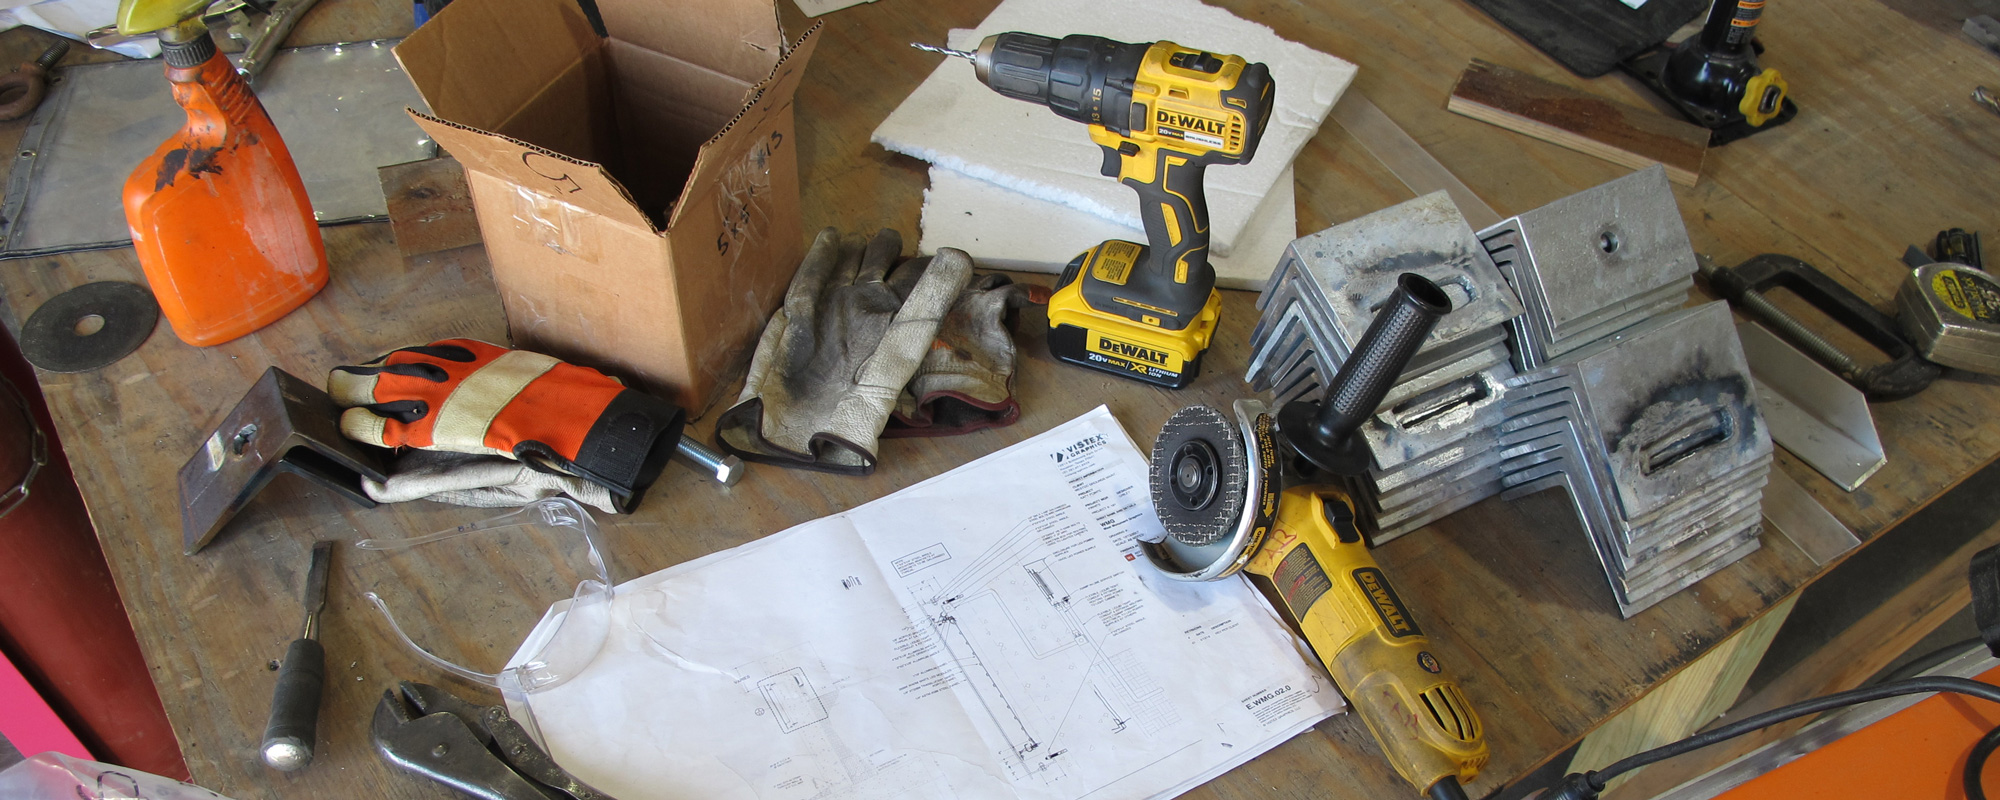 Various manufacturing tools, work gloves, safety glasses and fabrication drawings on work table